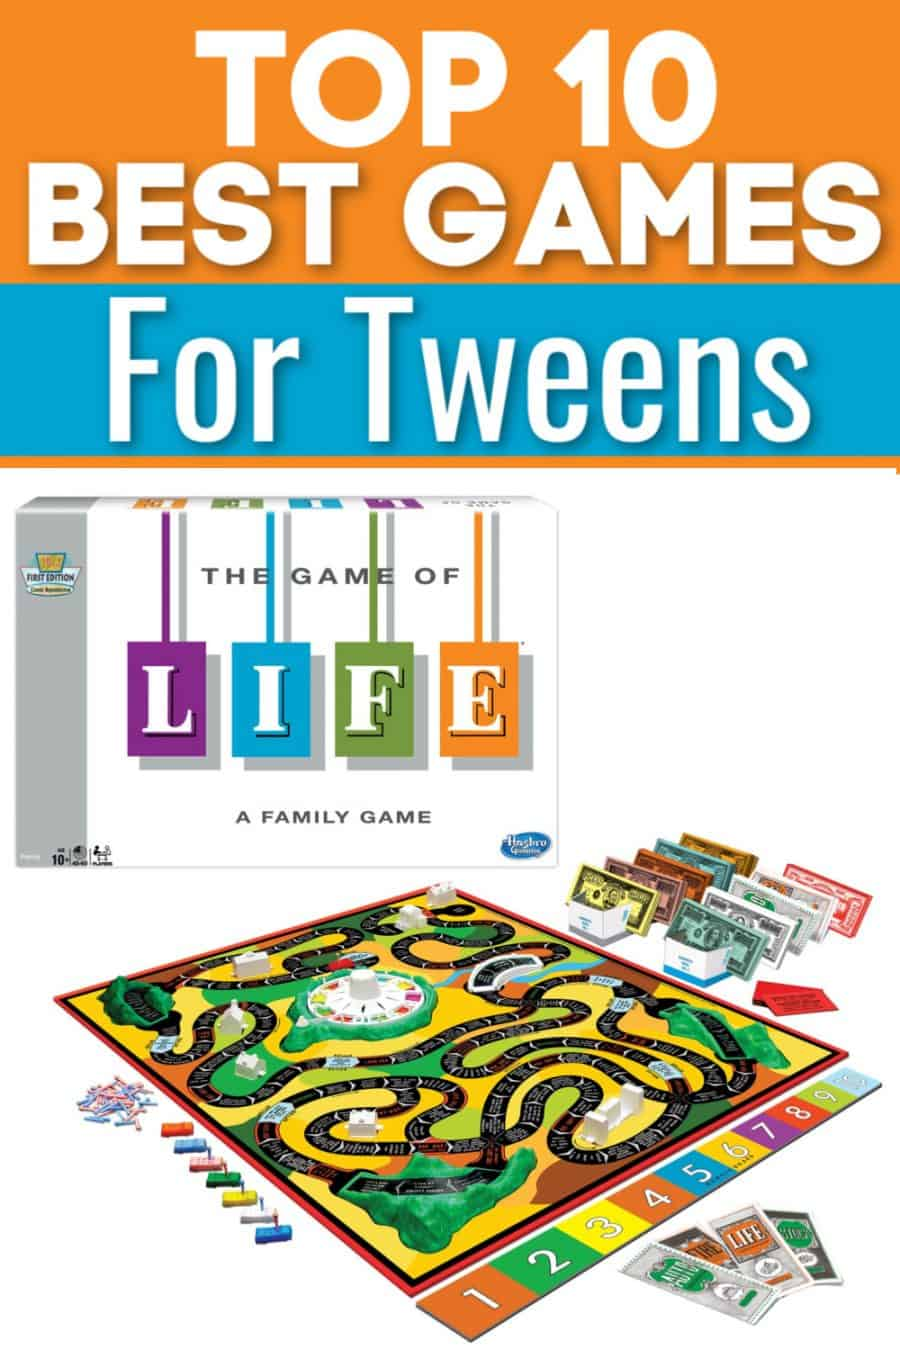 Top 10 Best Games for Tweens